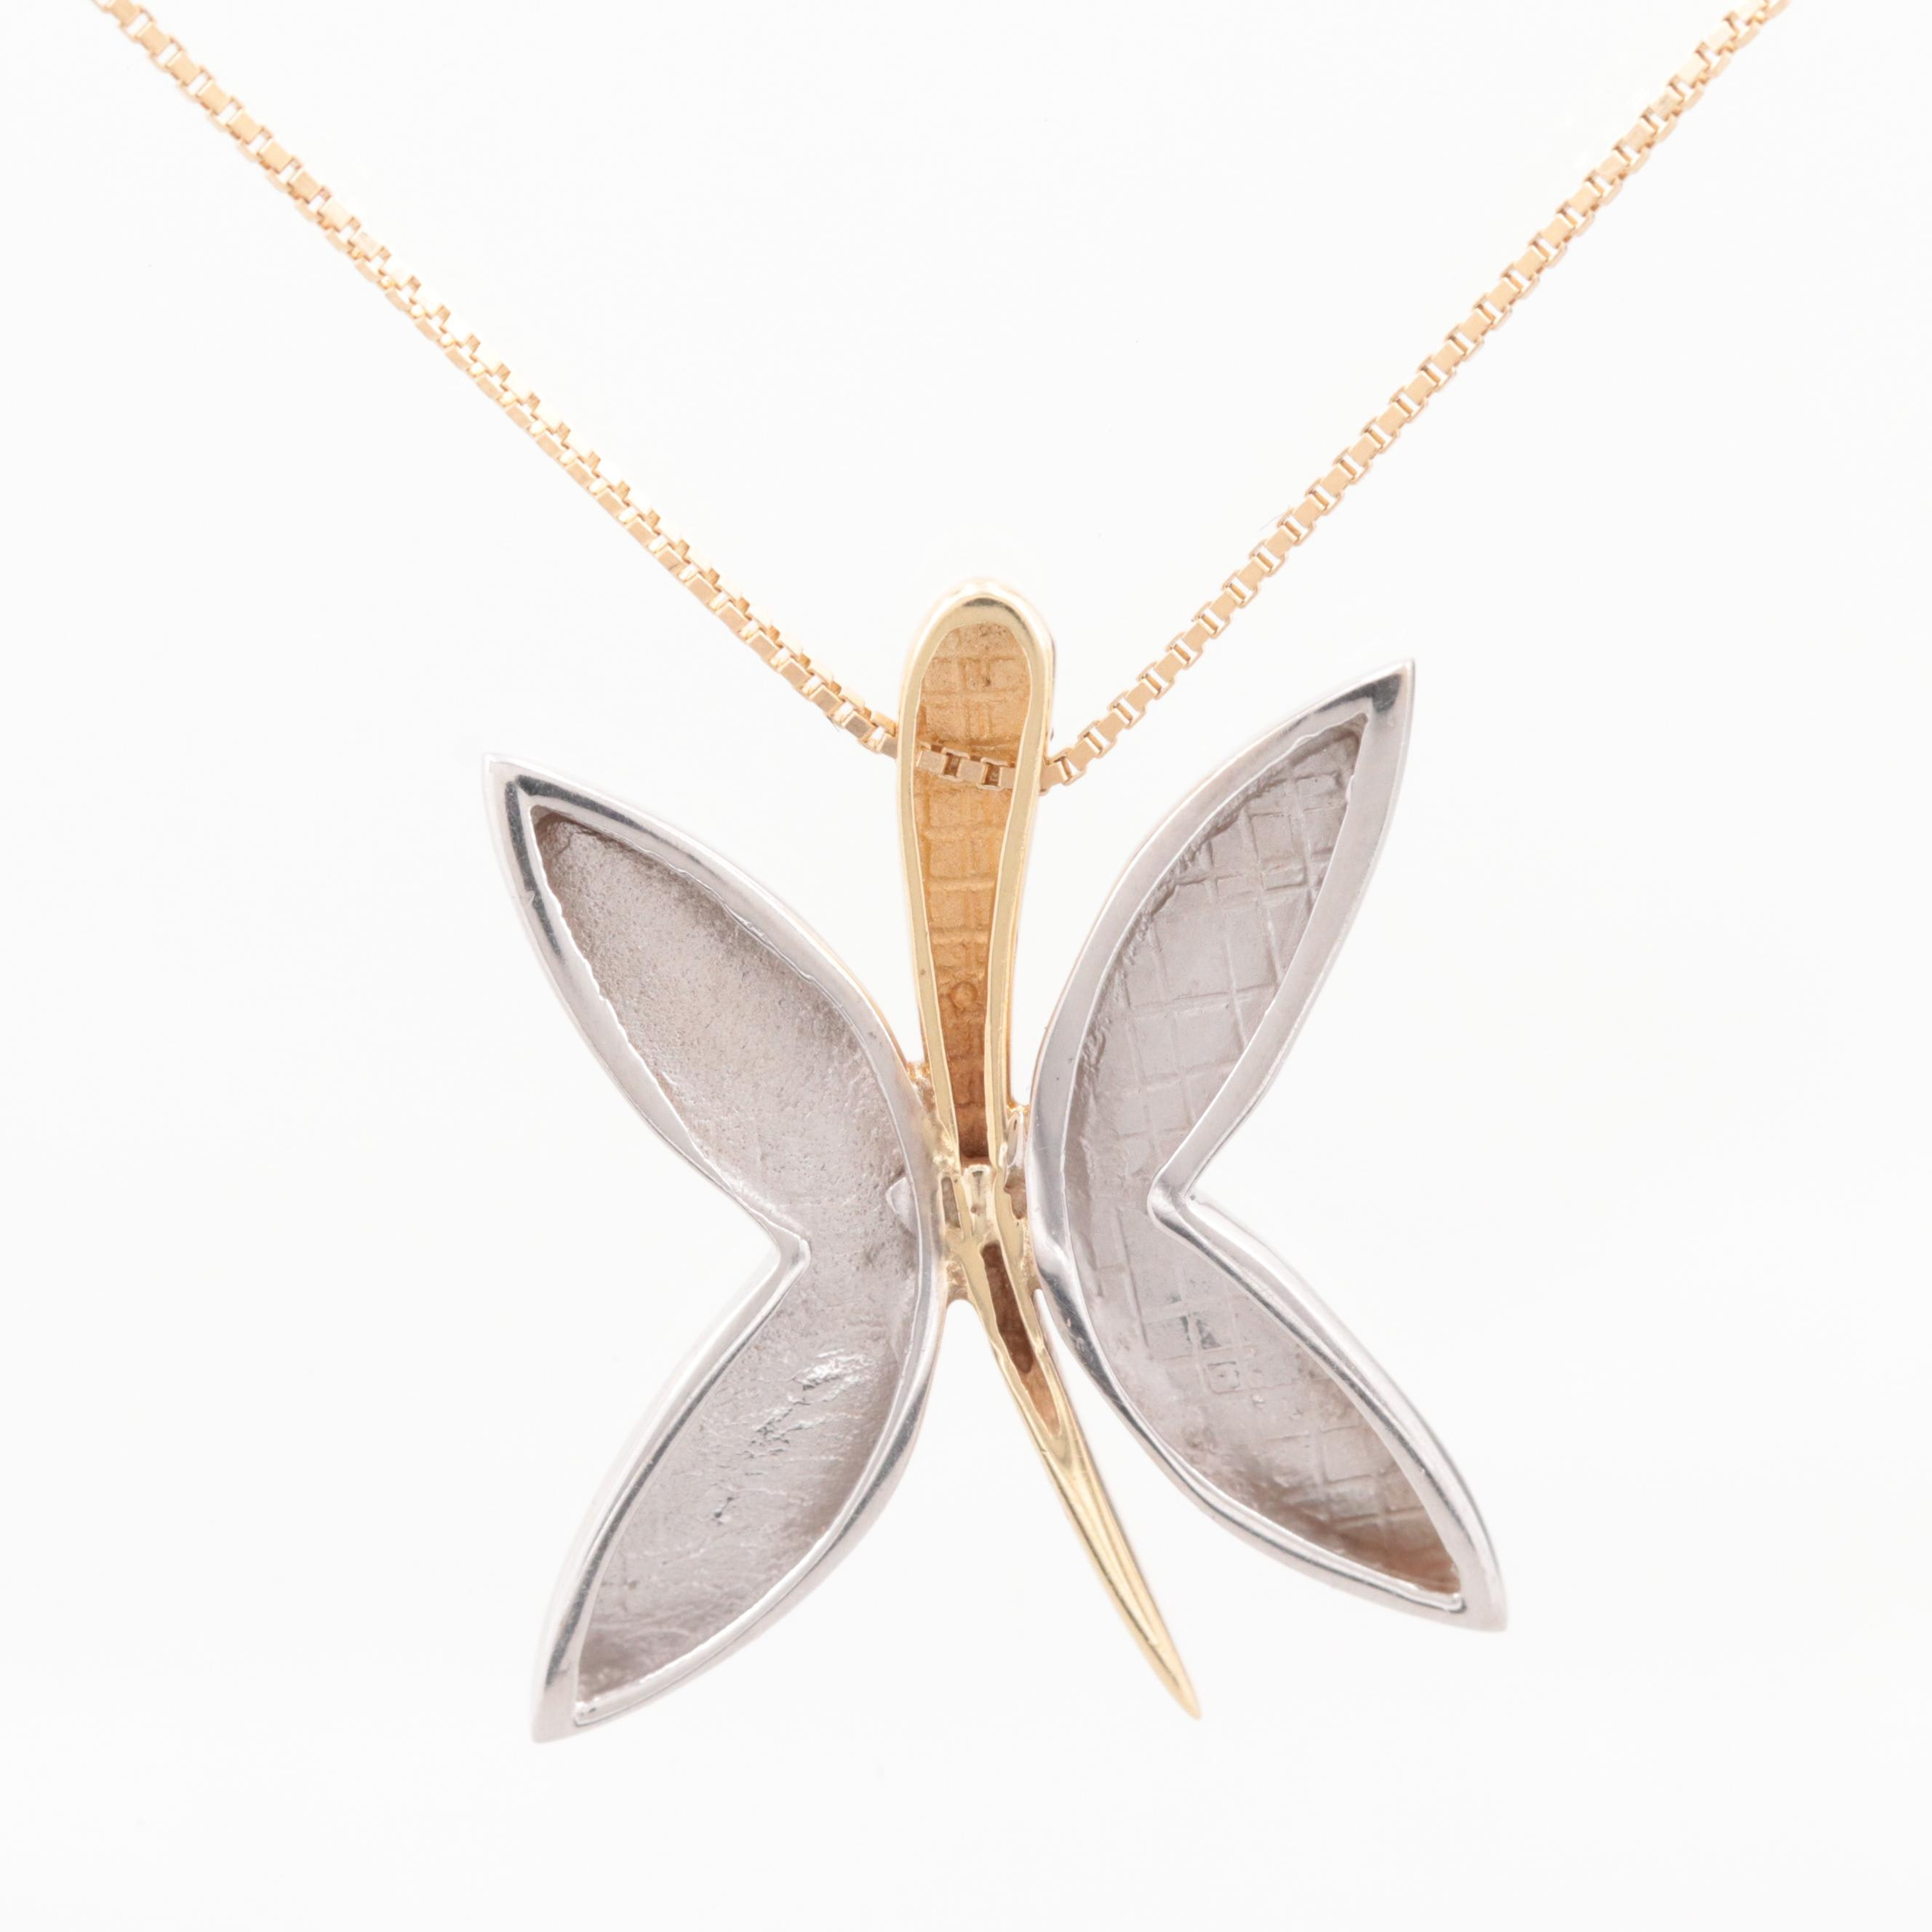 14K White and Yellow Gold Butterfly Pendant Necklace